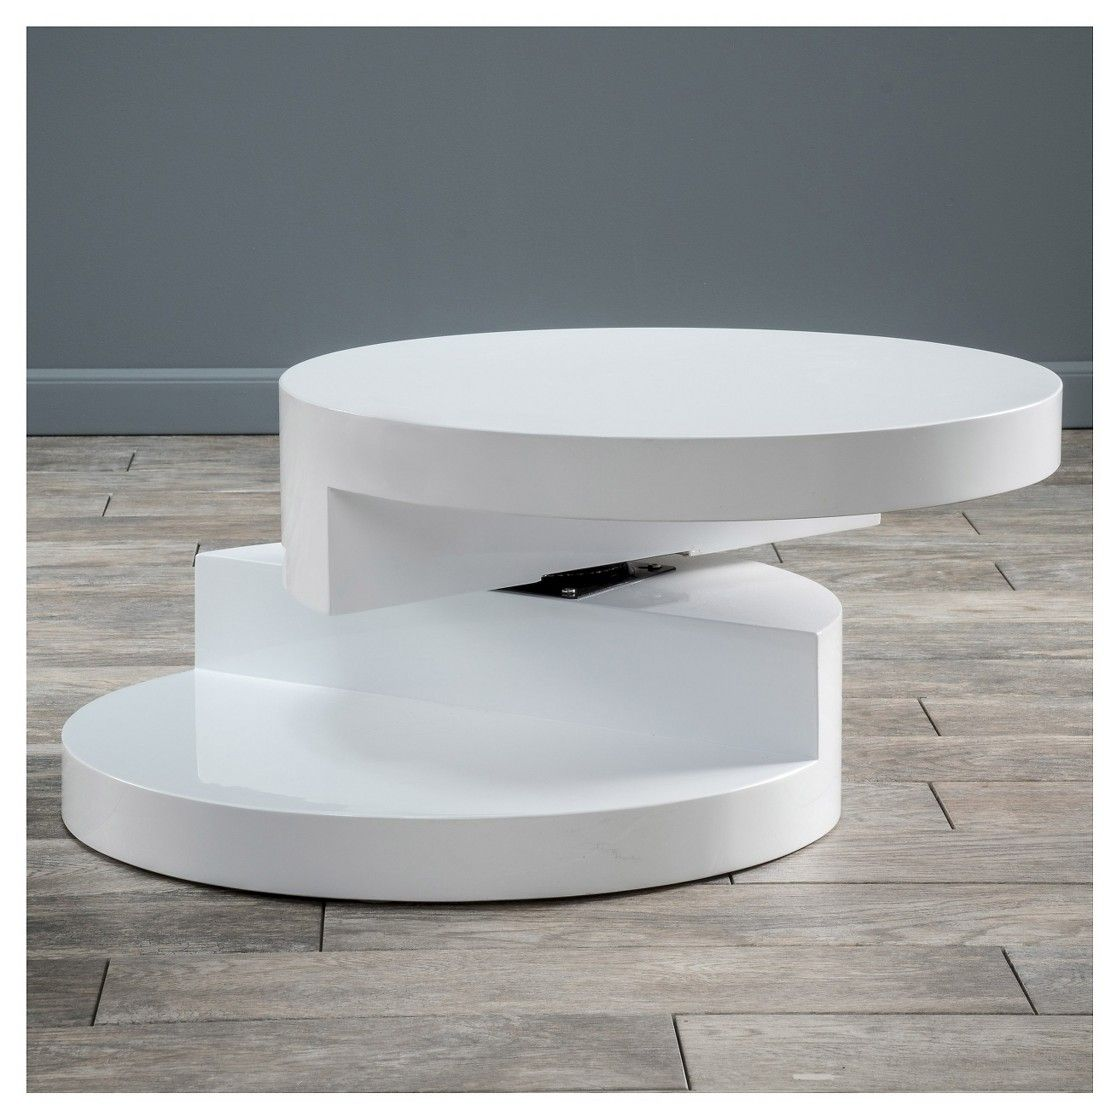 Osto Small Oval Rotatable Coffee Table Glossy White Christopher Knight Home Circular Coffee Table Coffee Table Coffee Table With Storage [ 1120 x 1120 Pixel ]